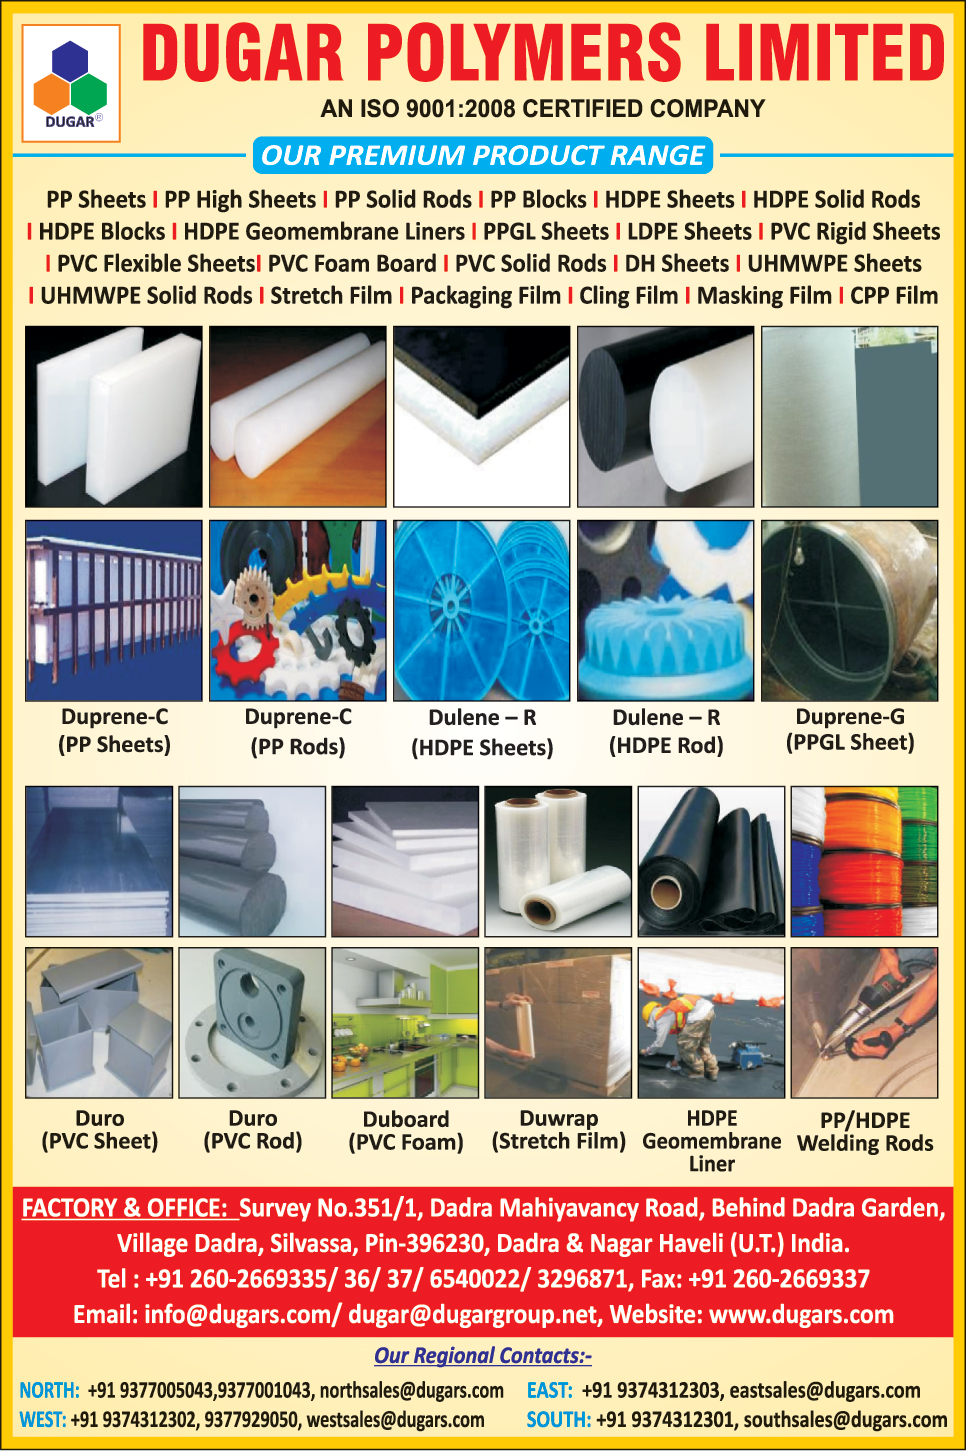 Pp Sheets, Pp High Sheets, Pp Solid Rods, Pp Blocks, Hdpe Sheets, Hdpe Solid Rods, Hdpe Blocks, Hdpe Geomembrane Liners, Ppgl Sheets, Ldpe Sheets, Pvc Rigid Sheets, Pvc Flexible Sheets, Pvc Foam Board, Pvc Solid Rods, Dh Sheets, Uhmwpe Sheets, Uhmwpe Solid Rods, Stretch Film, Packaging Film, Cling Film, masking Film, Cpp Film, Pp Welding Rods, Hdpe Welding Rods